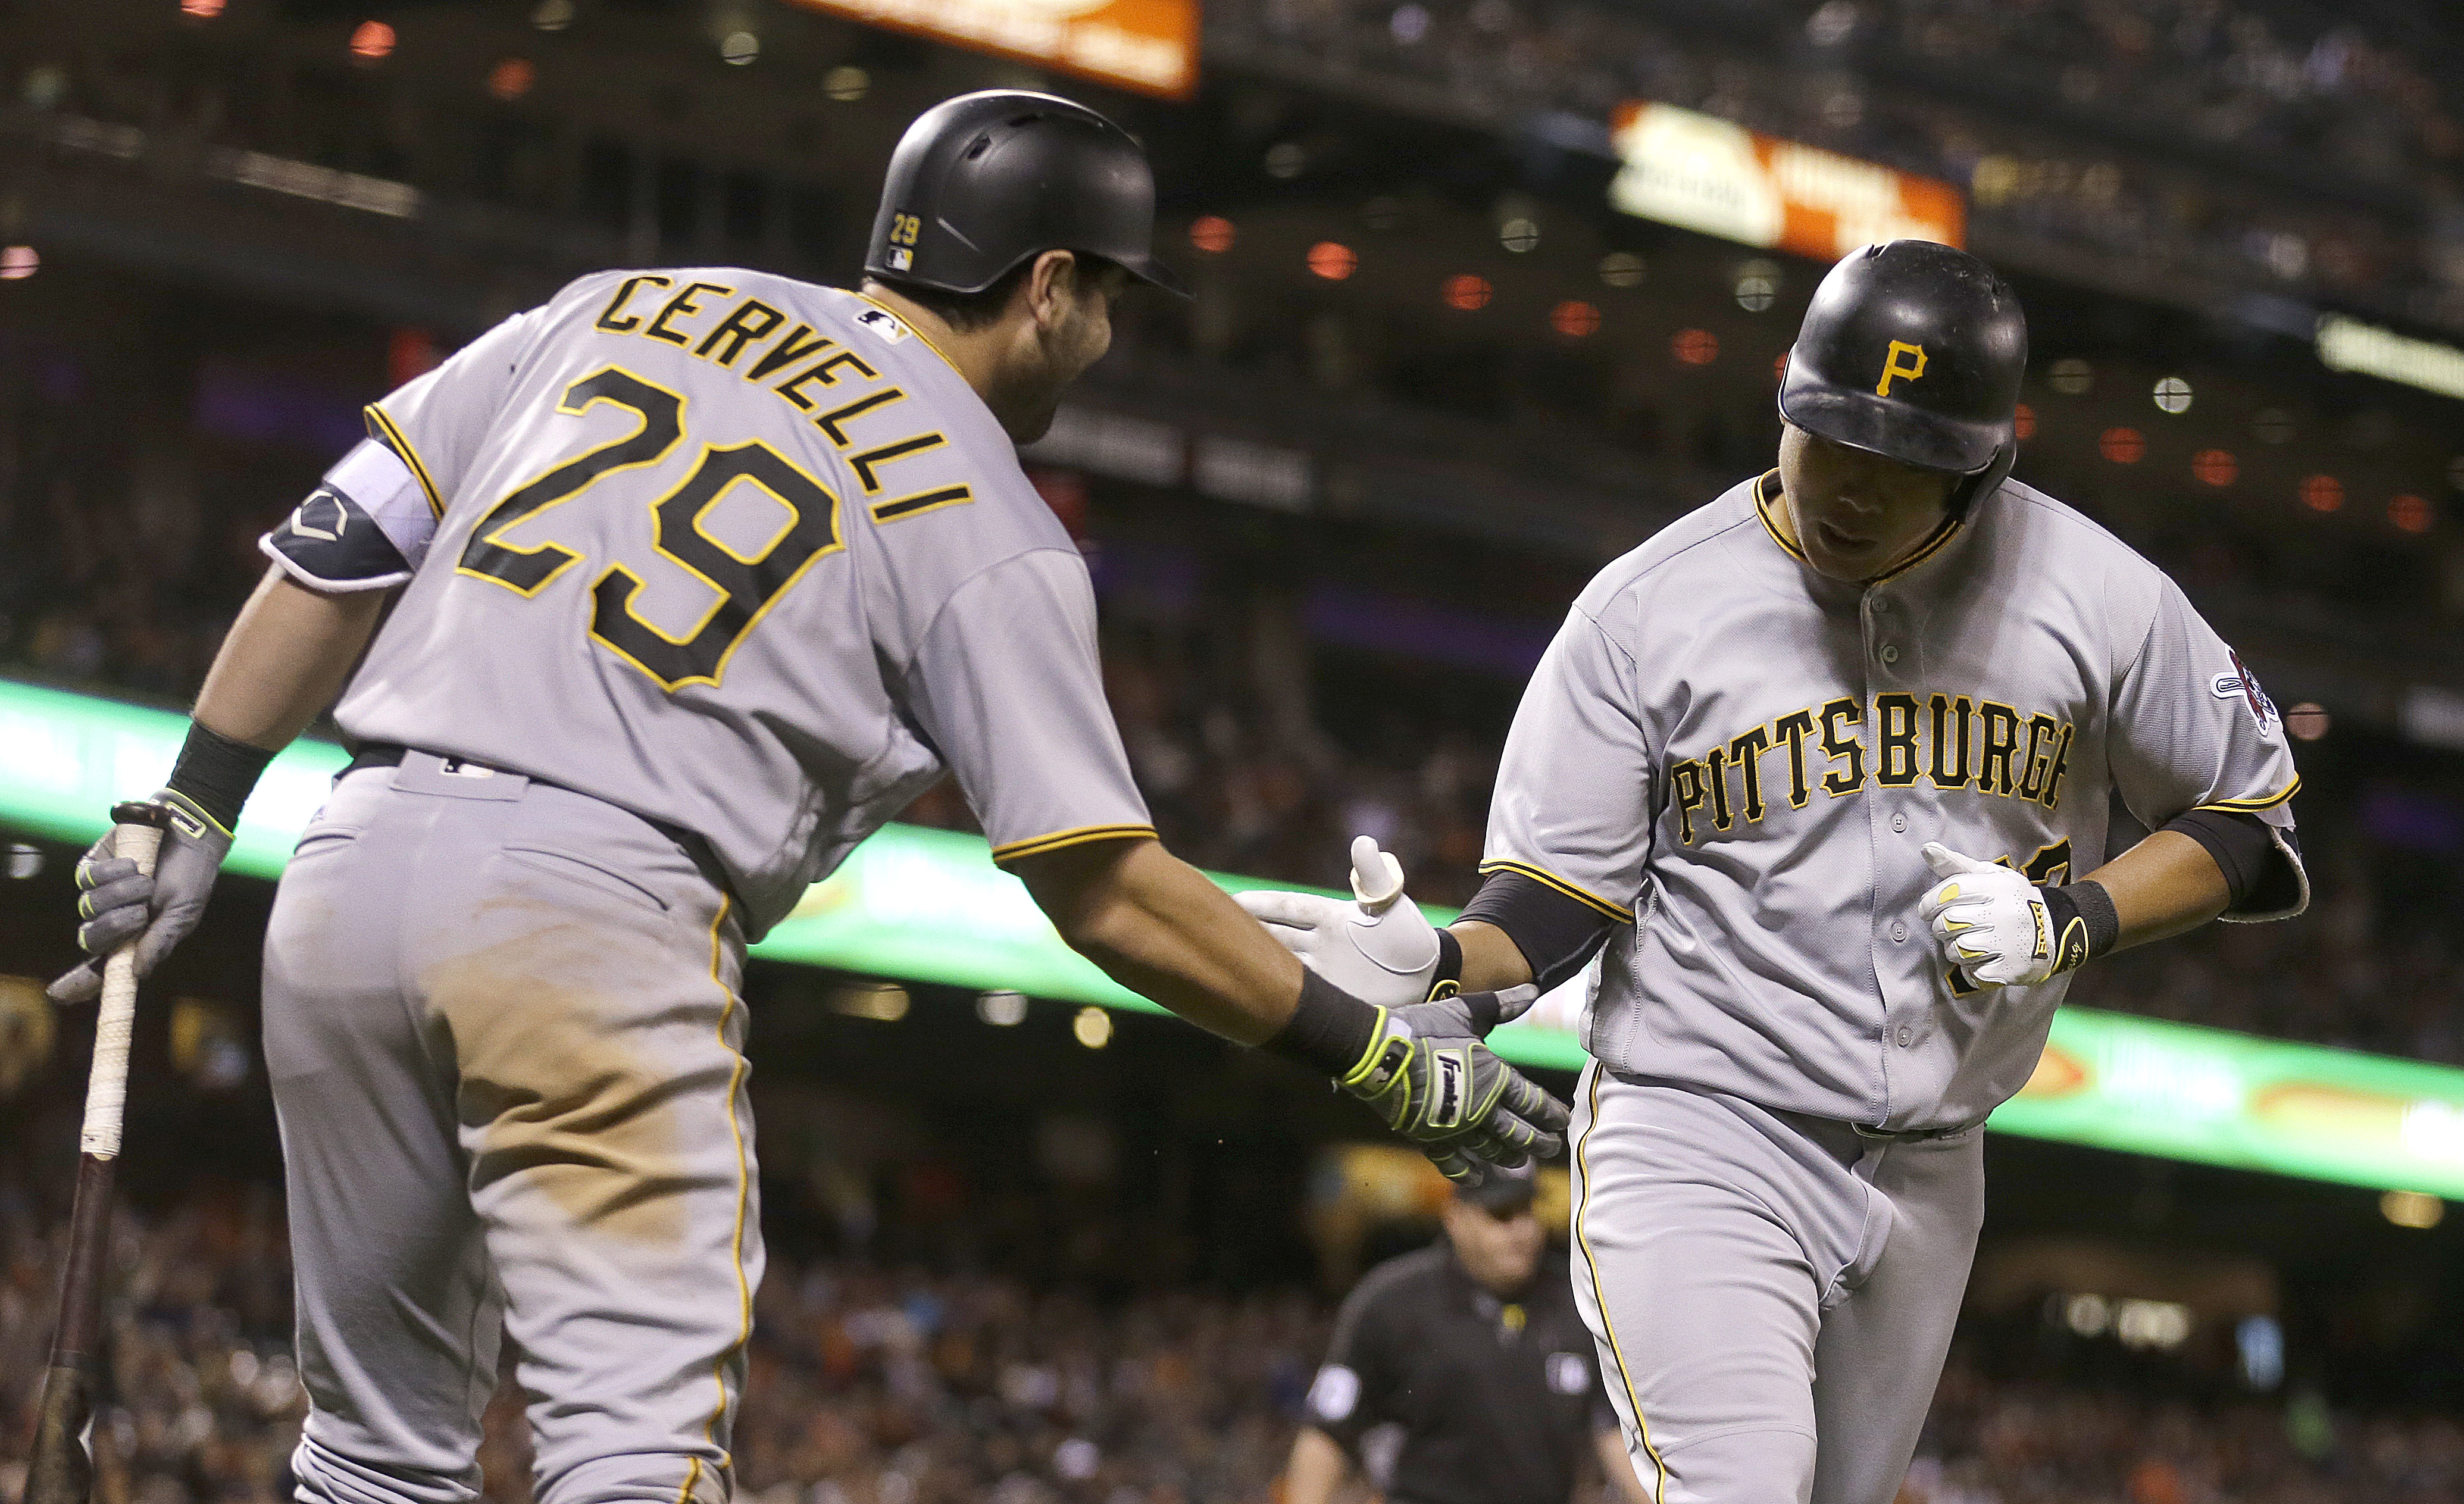 Pittsburgh Pirates' Jung Ho Kang, right, is congratulated by Francisco Cervelli (29) after hitting a home run off San Francisco Giants' Derek Law during the eighth inning of a baseball game Tuesday, Aug. 16, 2016, in San Francisco. (AP Photo/Ben Margot)